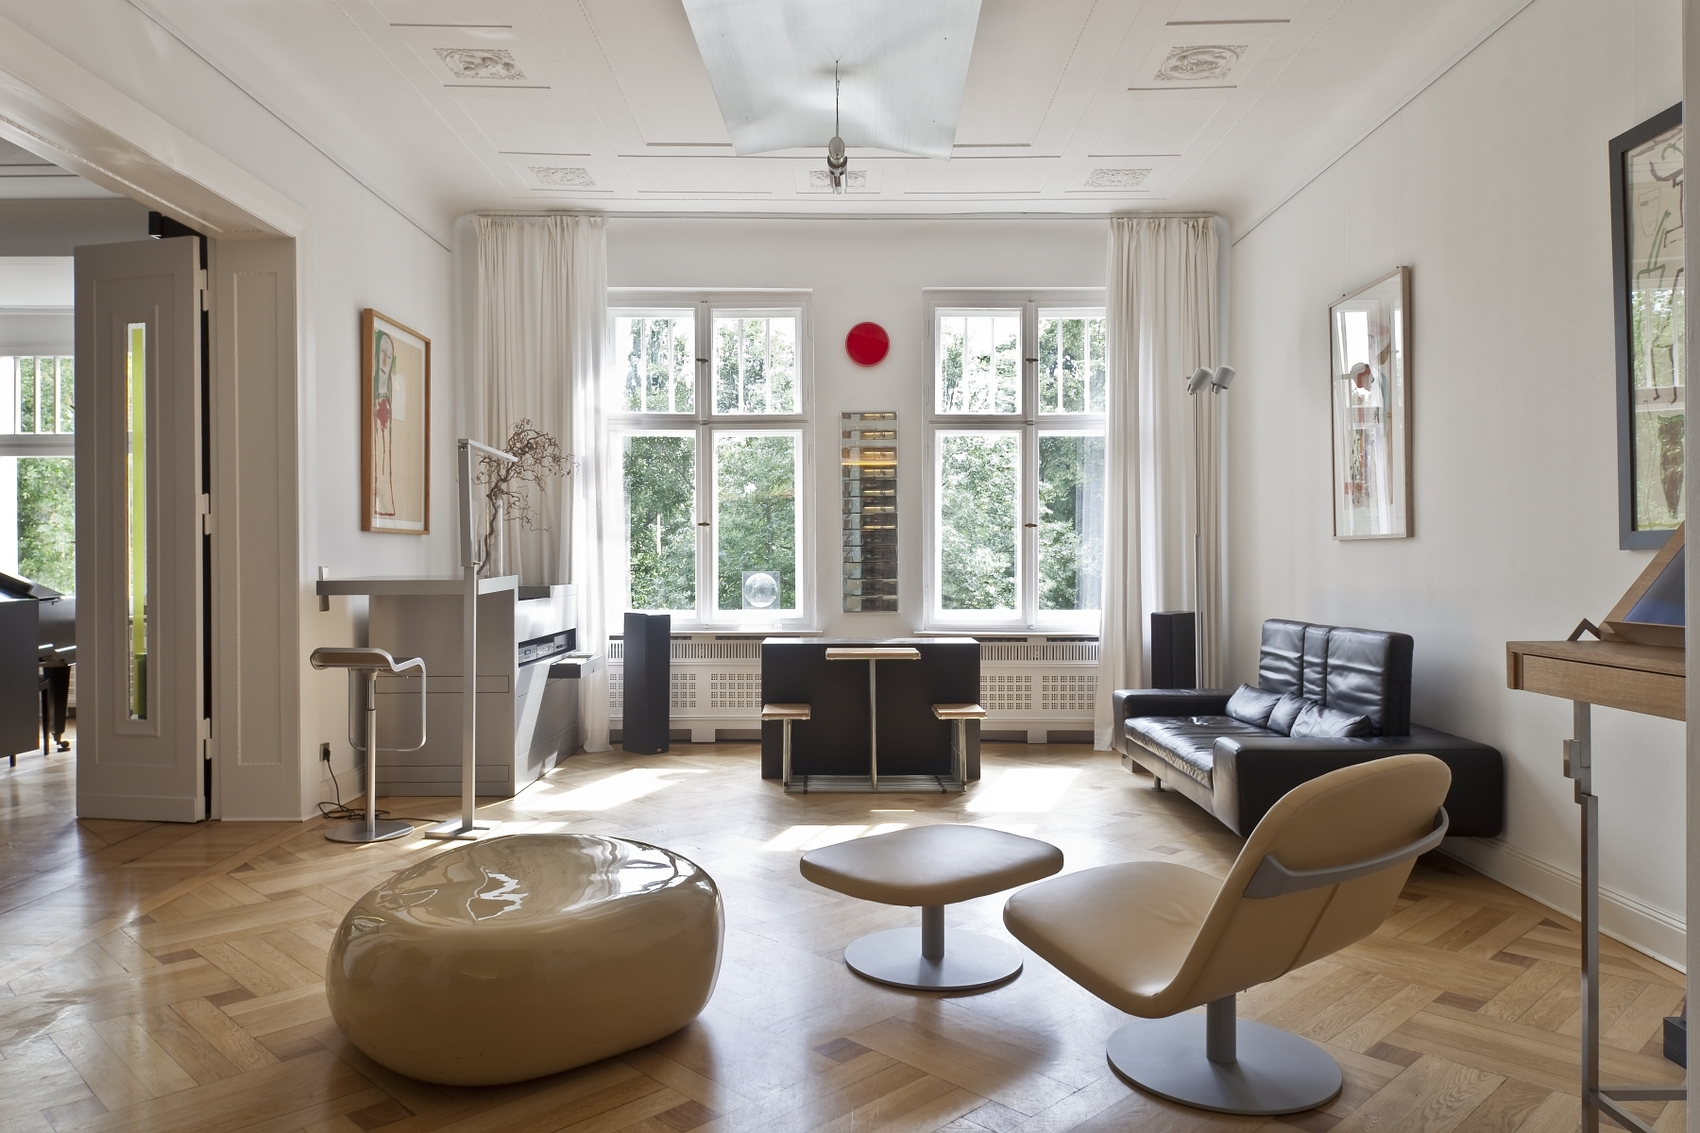 This four-bedroom apartment in Berlin is on the market for €2.76 million ($3.12 million). It features